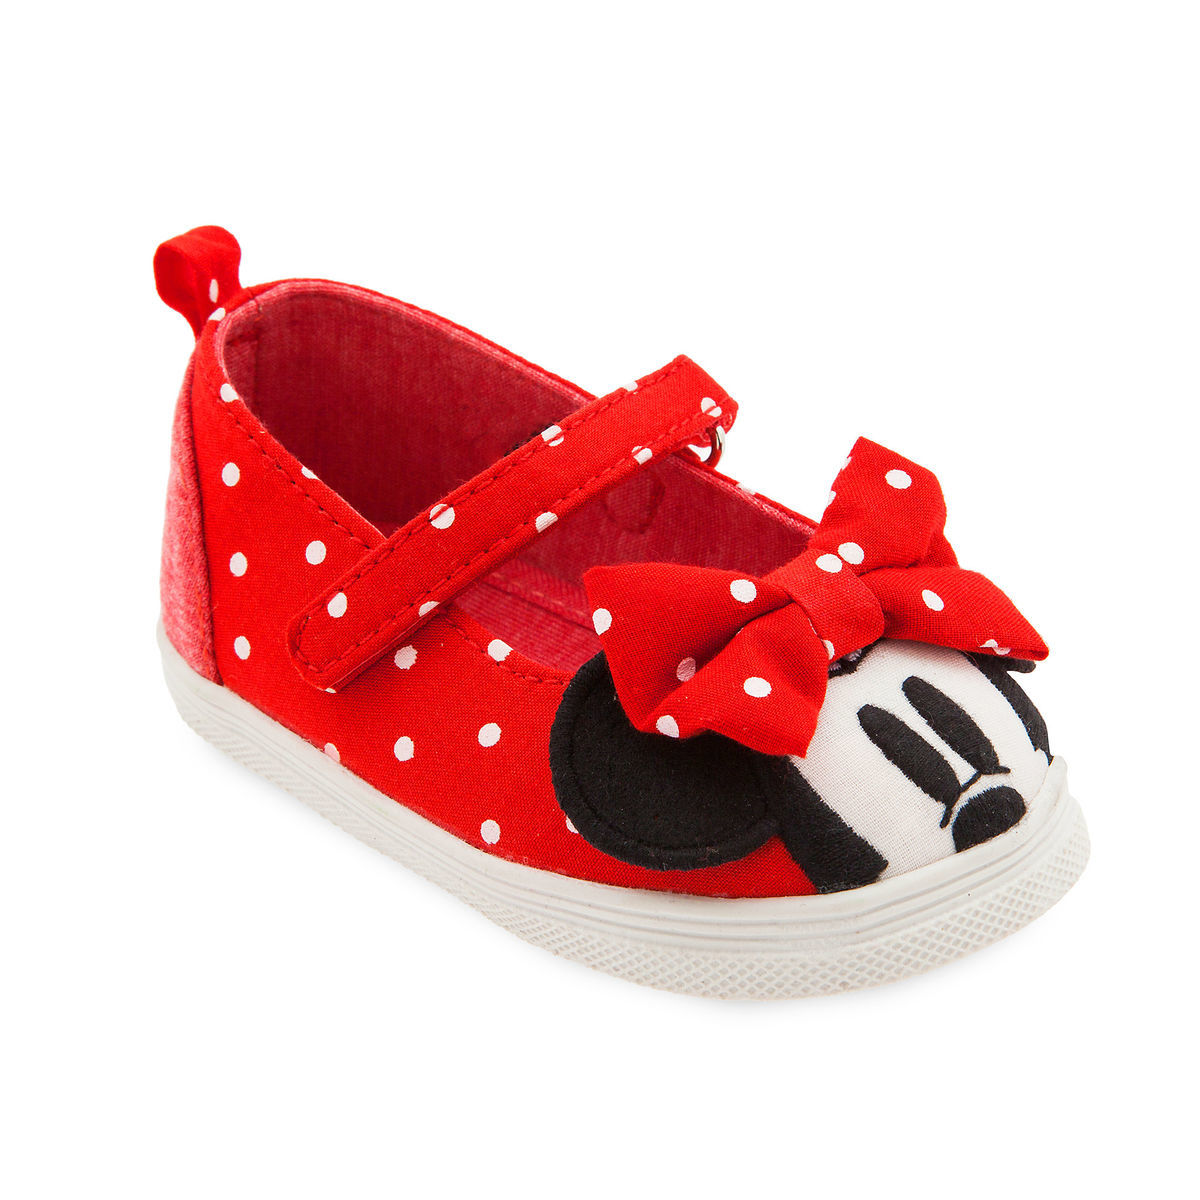 79c4a49ba25 Product Image of Minnie Mouse Shoes for Baby   1